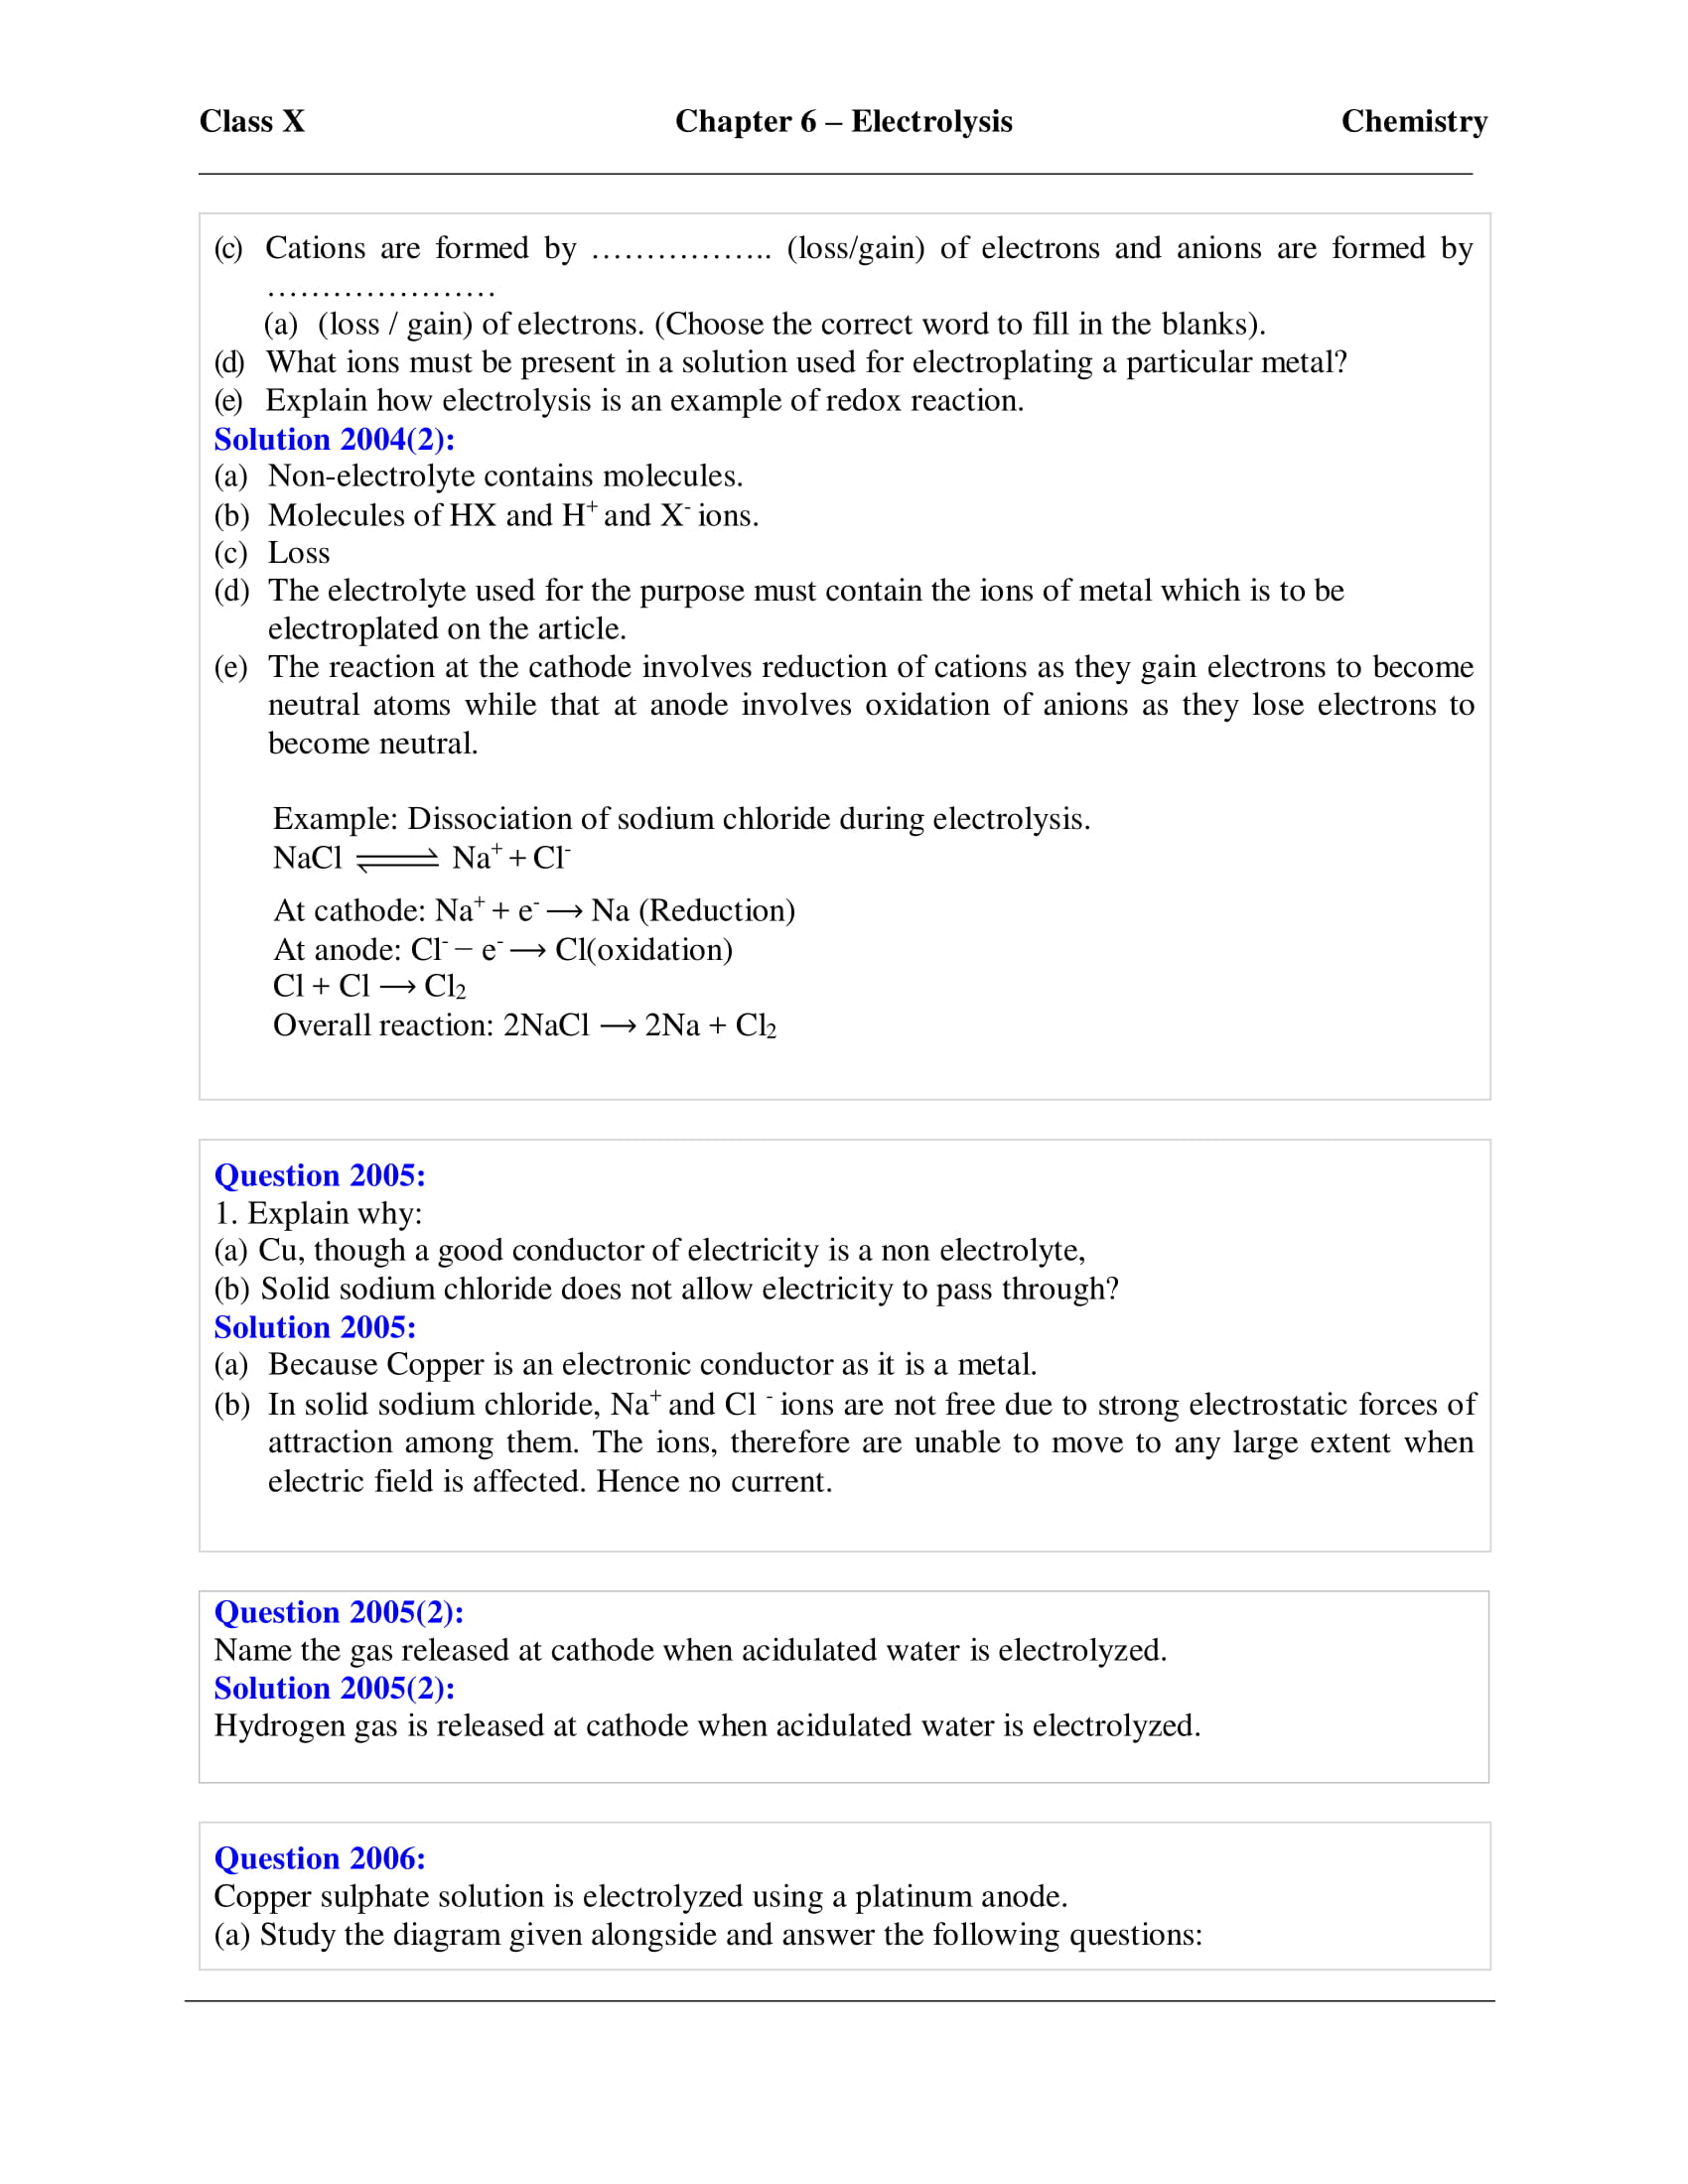 icse-selina-chemistry-solutions-class-10-chapter-6-electrolysis-11